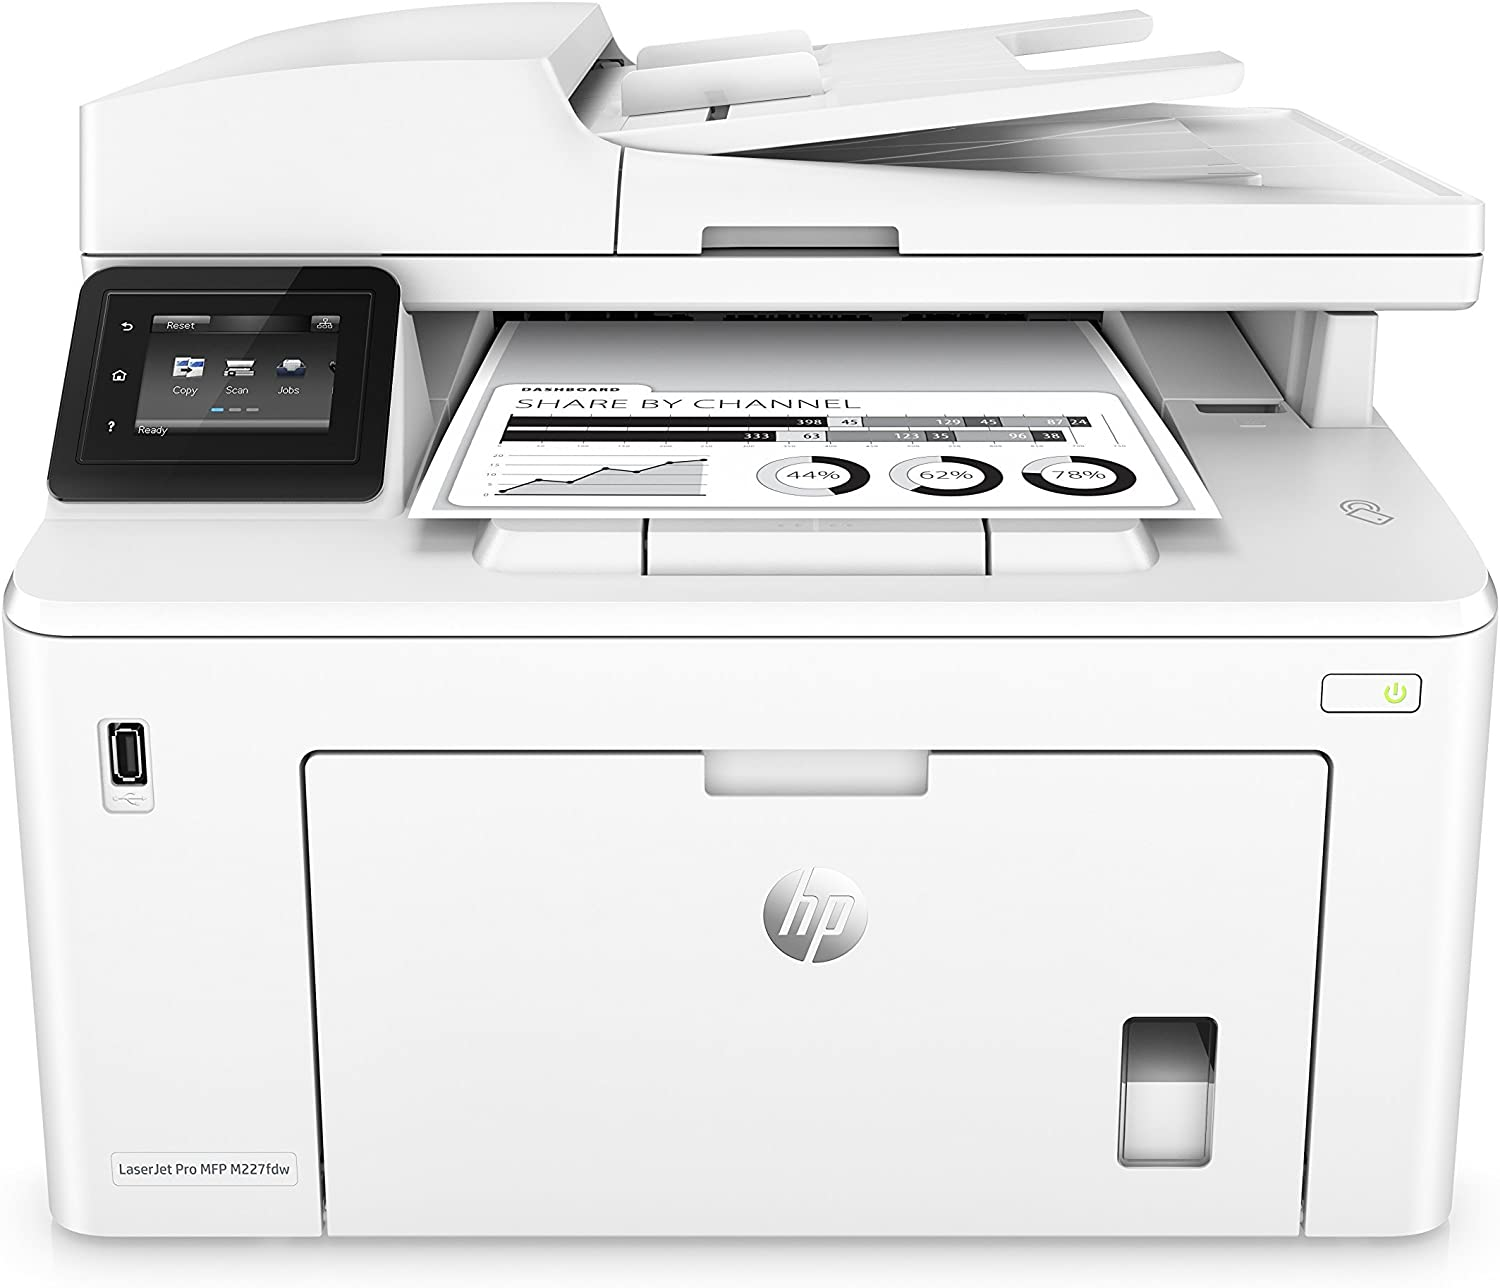 HP Laserjet Pro M227fdw All-in-One Wireless Laser Printer, Amazon Dash Replenishment Ready (G3Q75A). - (Renewed)